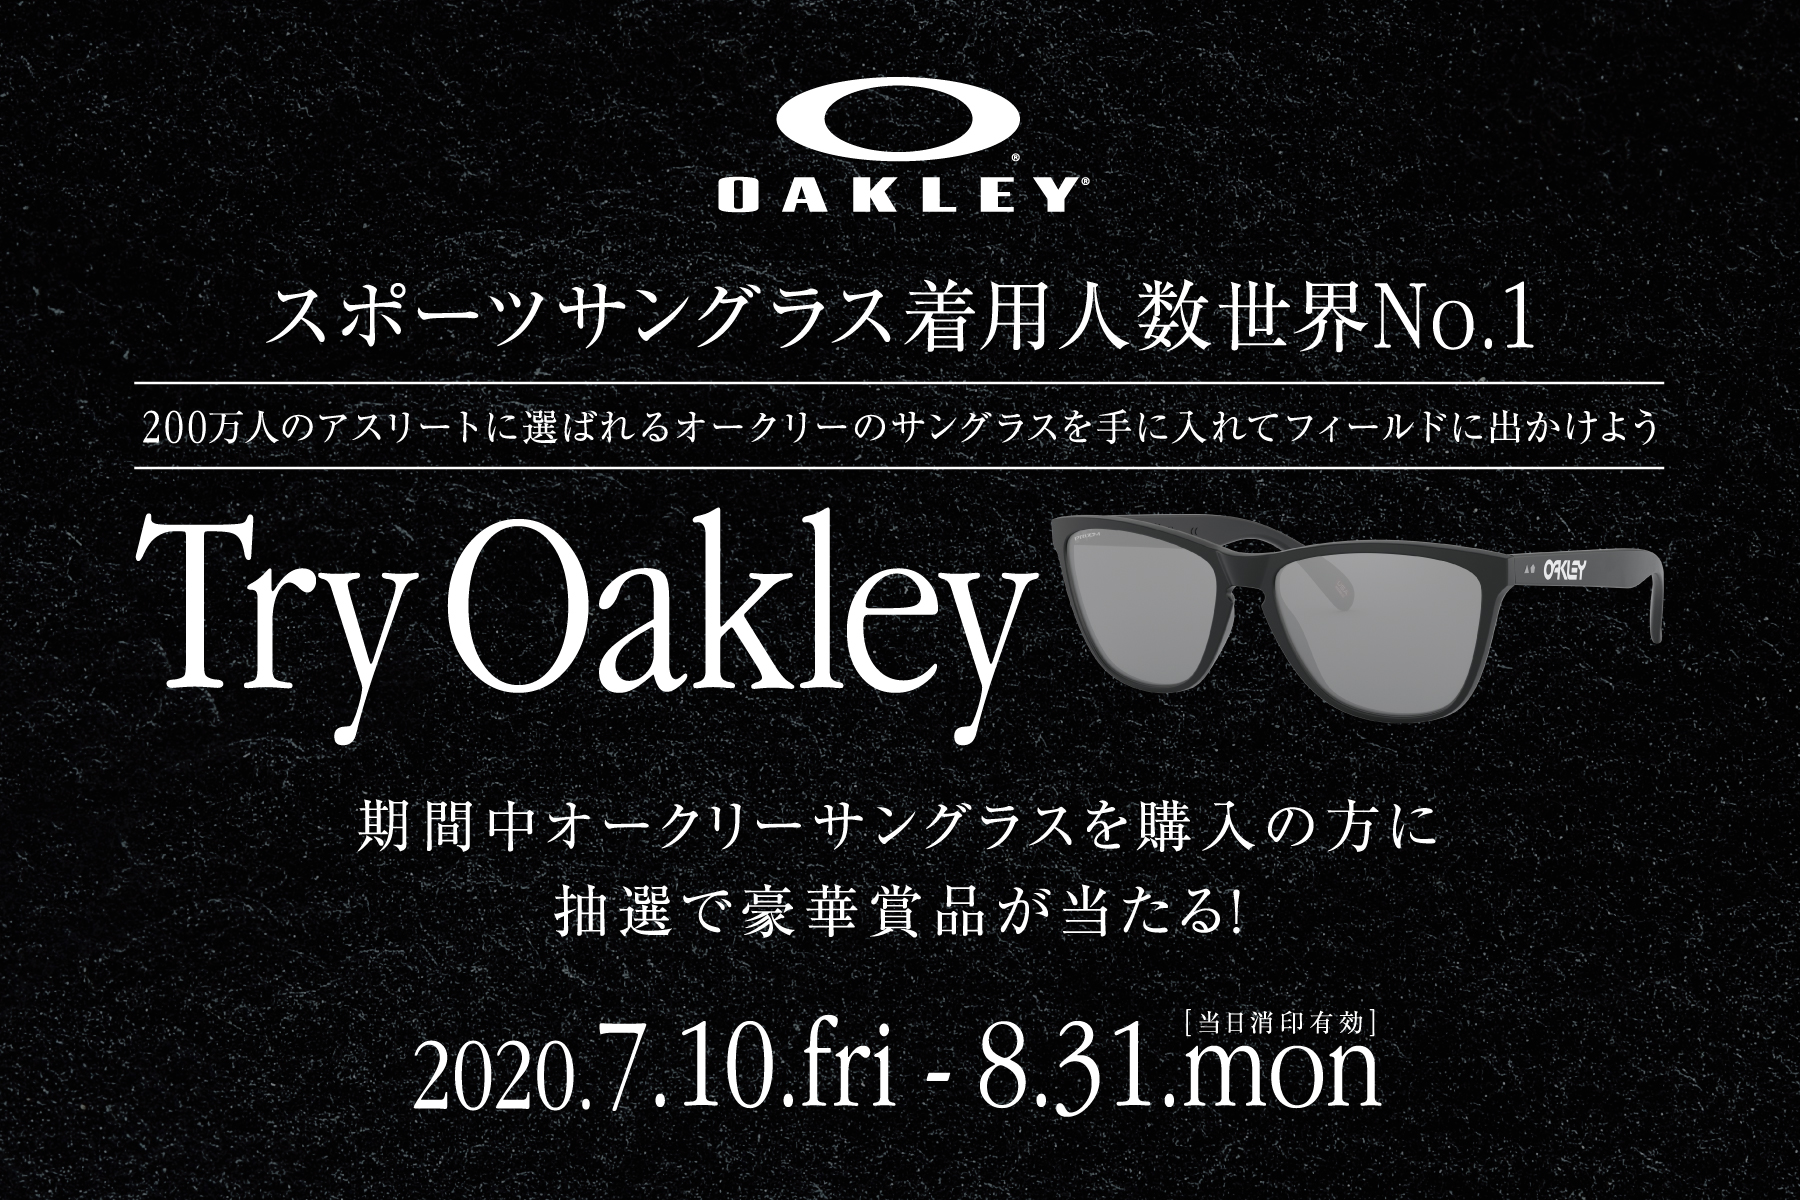 Try Oakley プレゼントキャンペーン